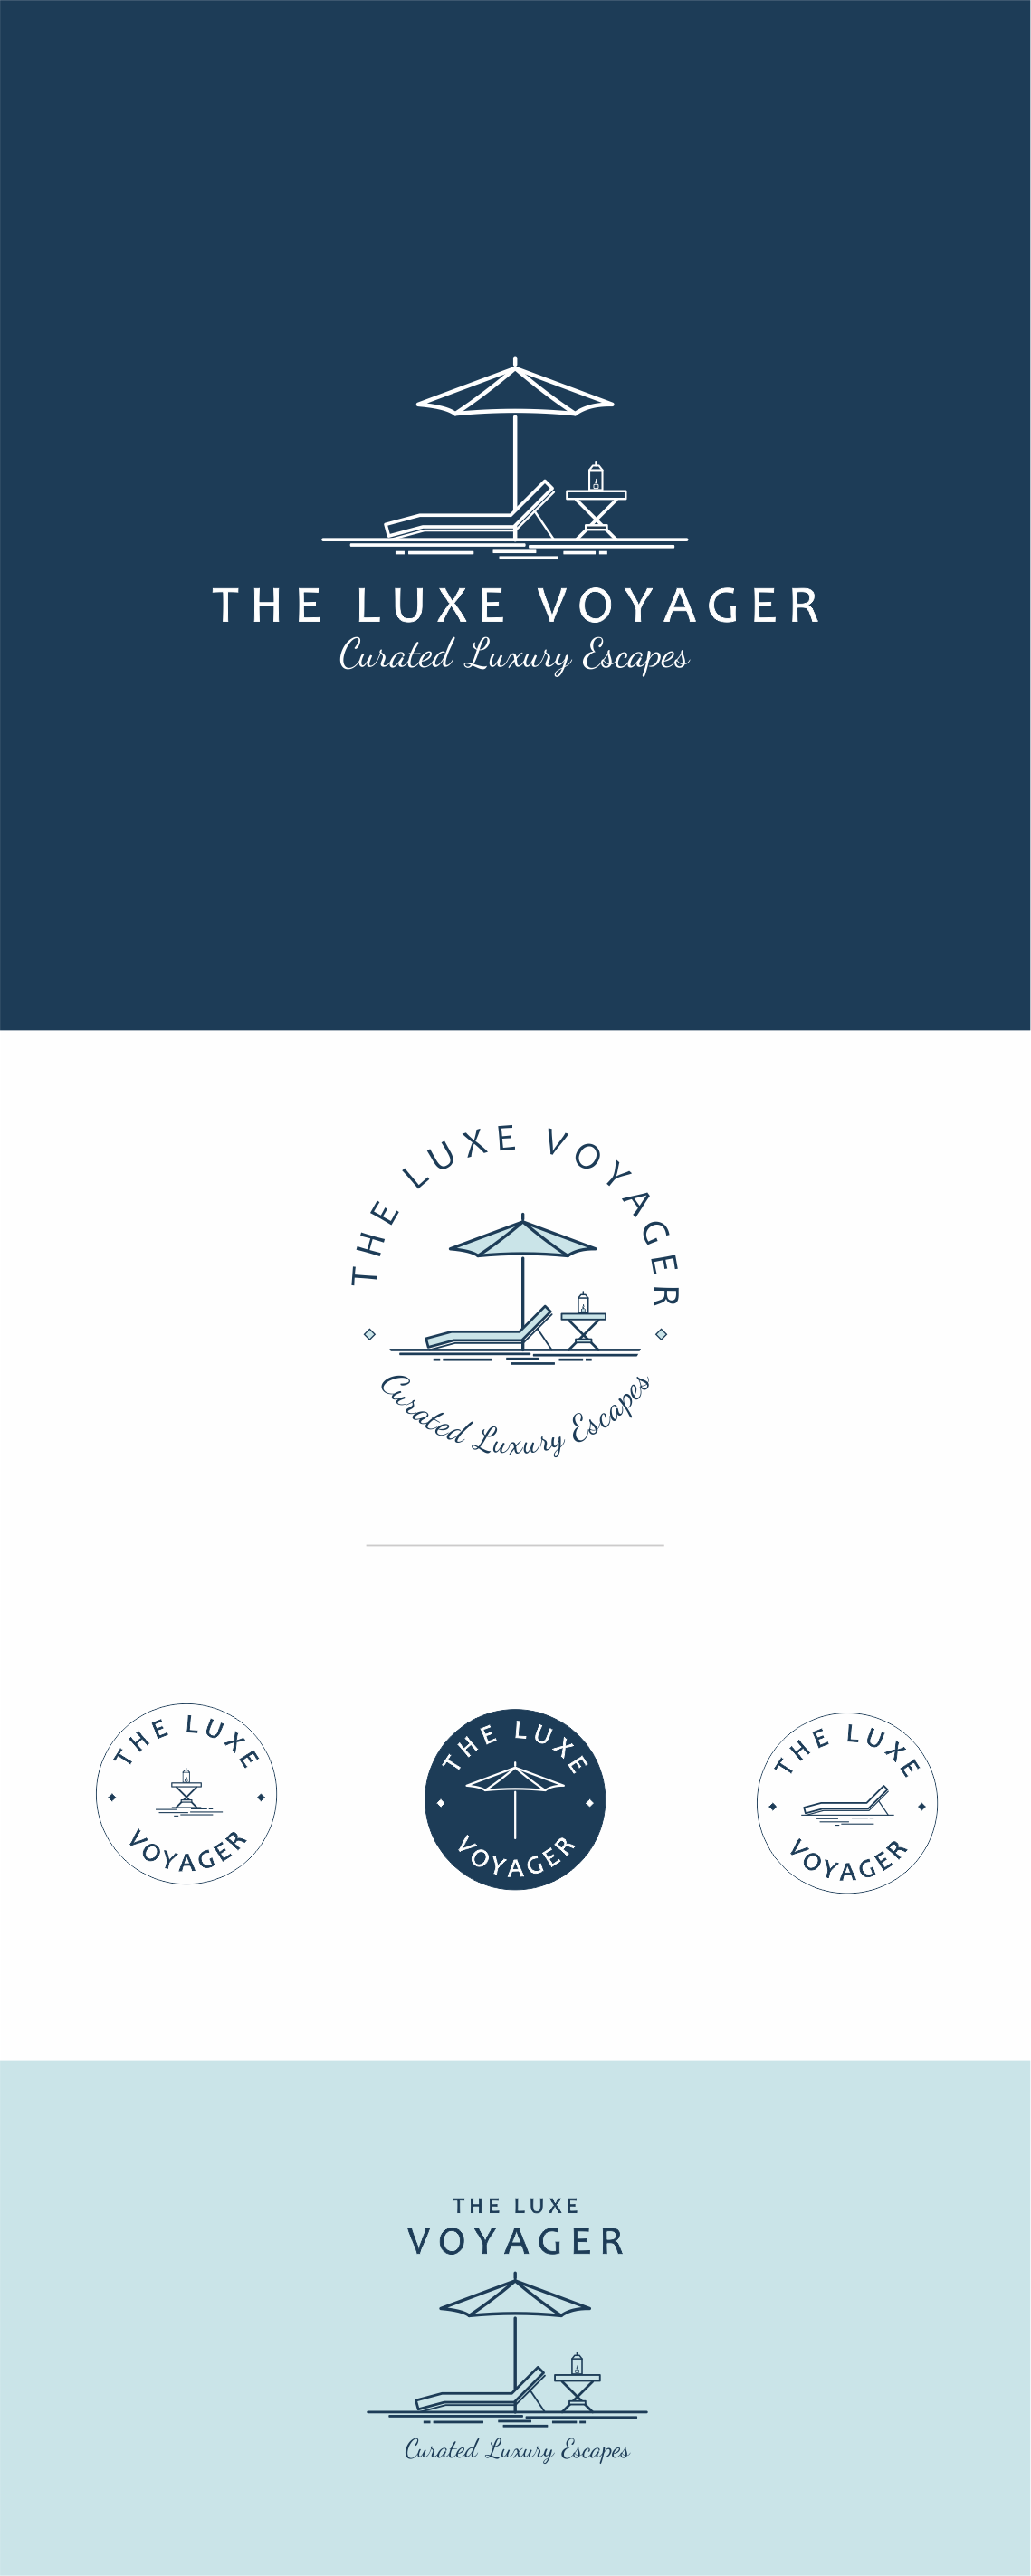 Create a captivating logo for a new luxury travel blog / online travel agency